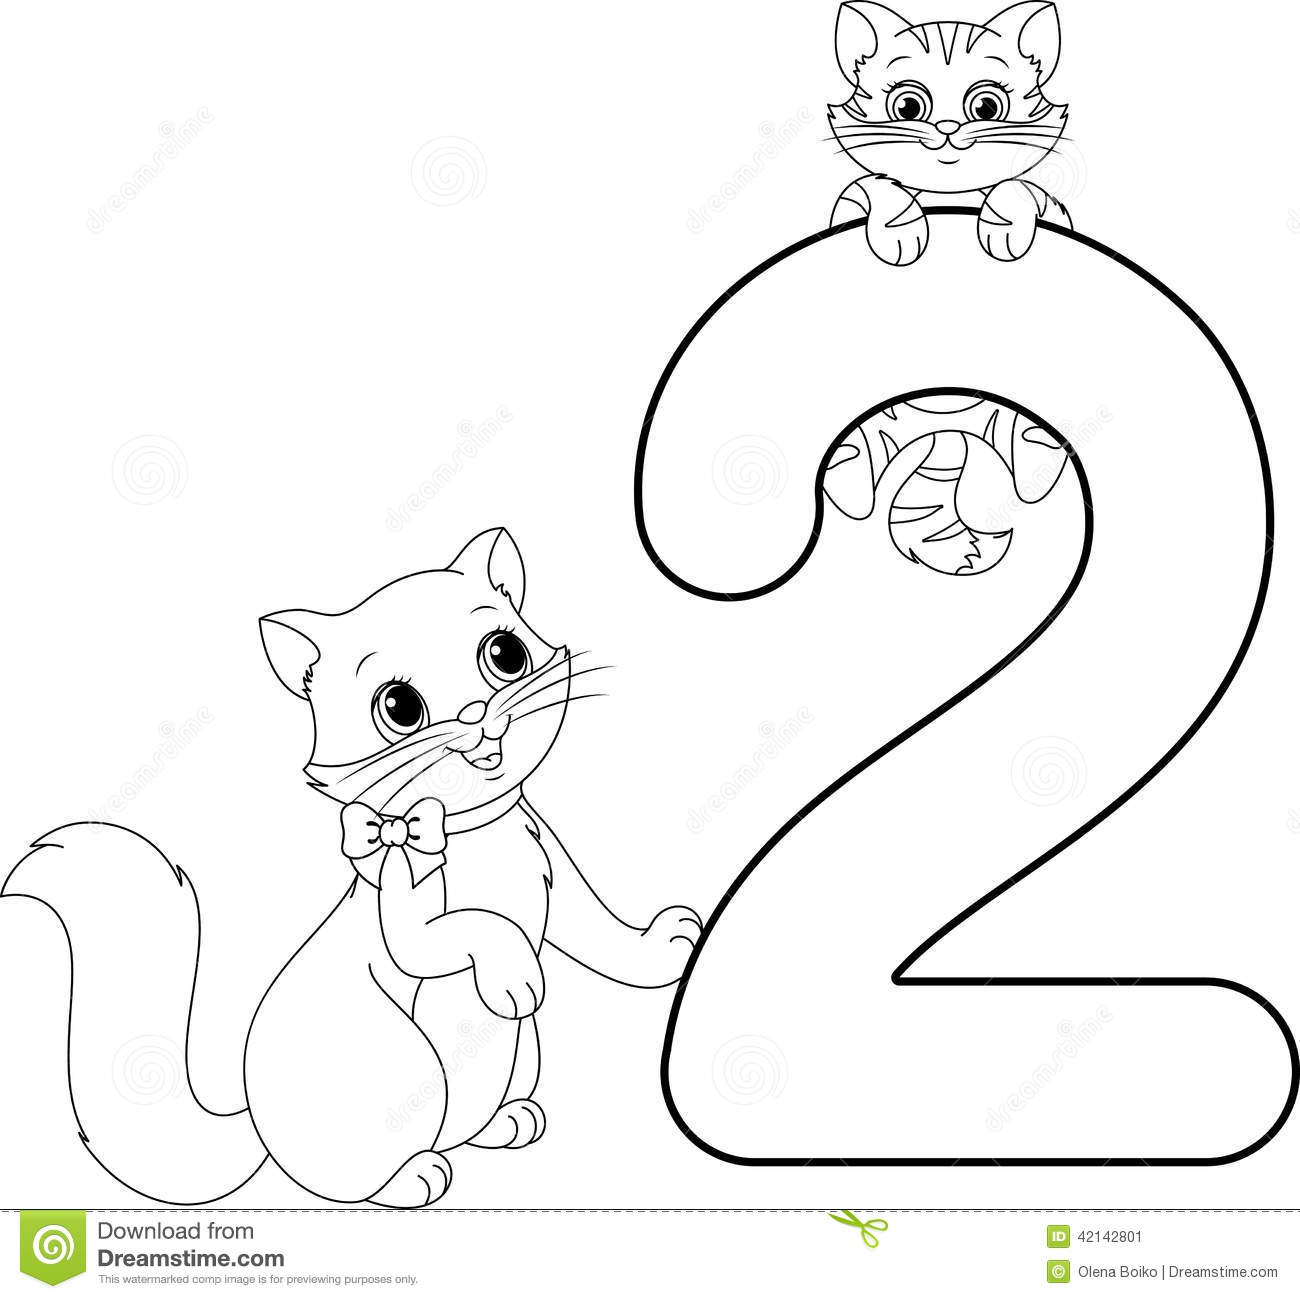 Two Cats Coloring Page Stock Vector - Image: 42142801